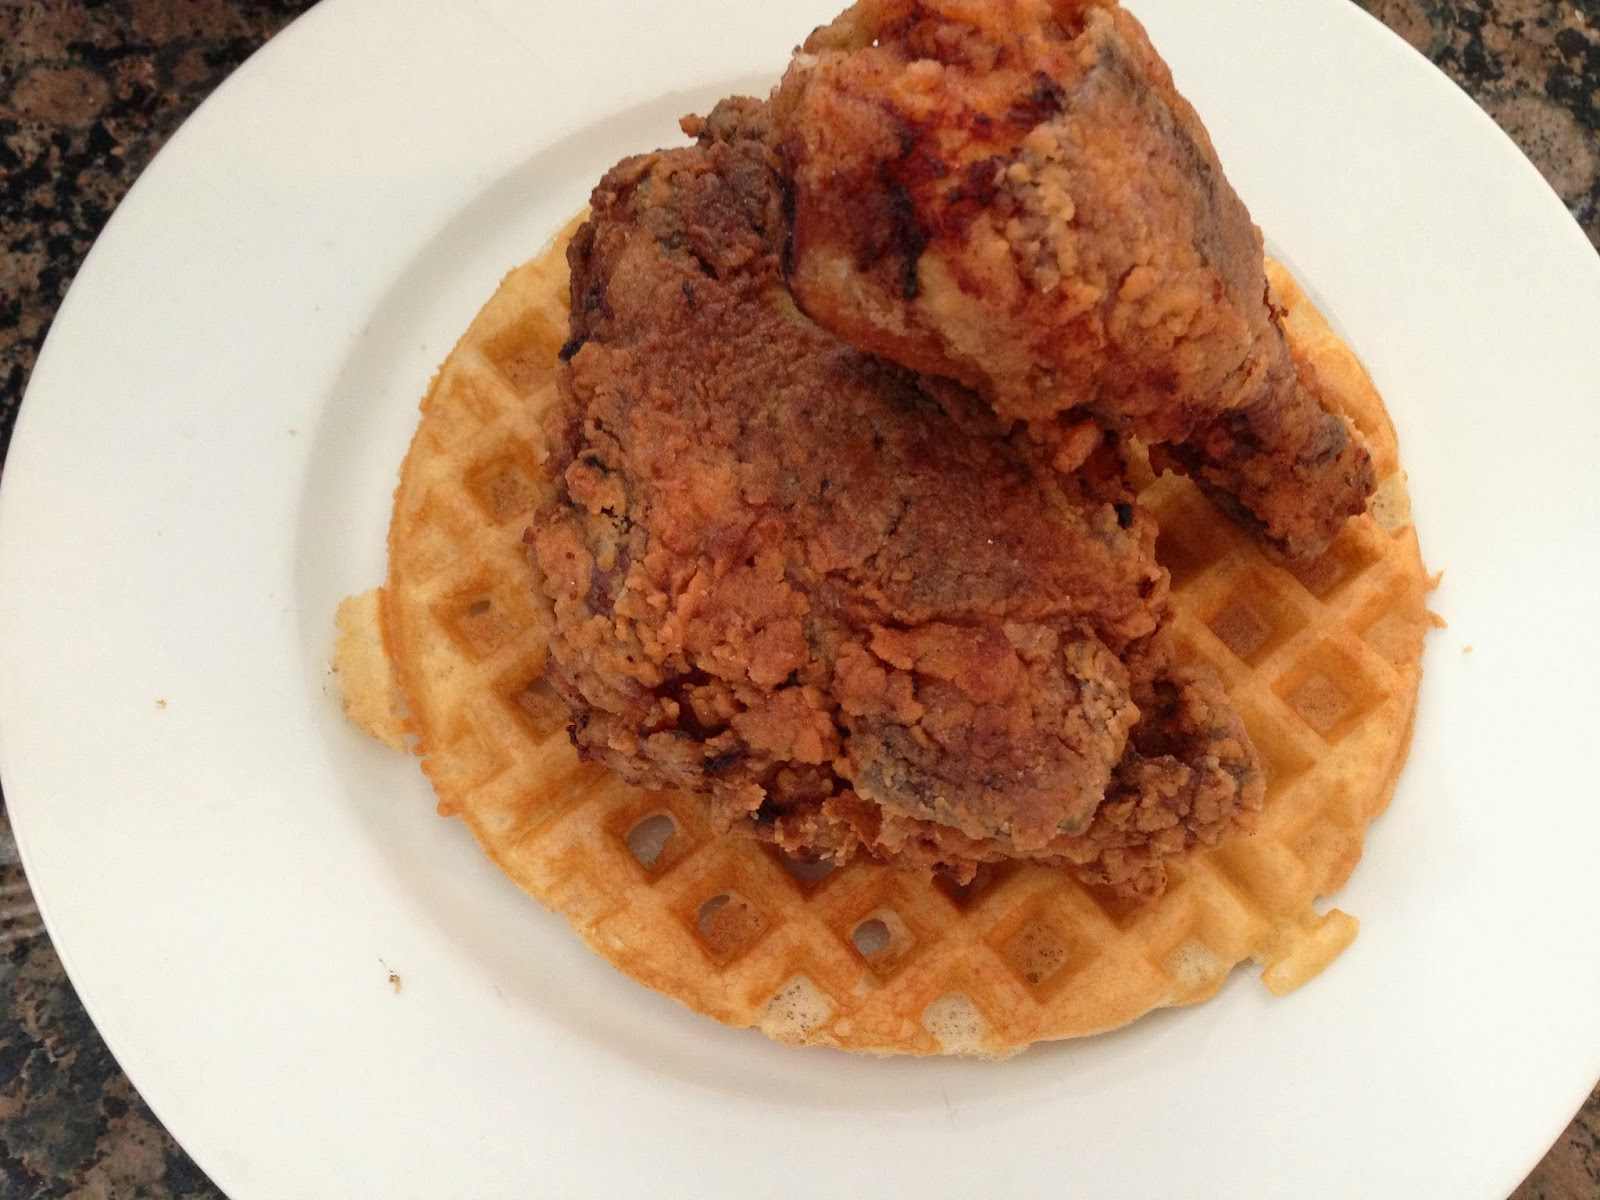 revelation! I made gluten free fried chicken AND gluten free waffles ...